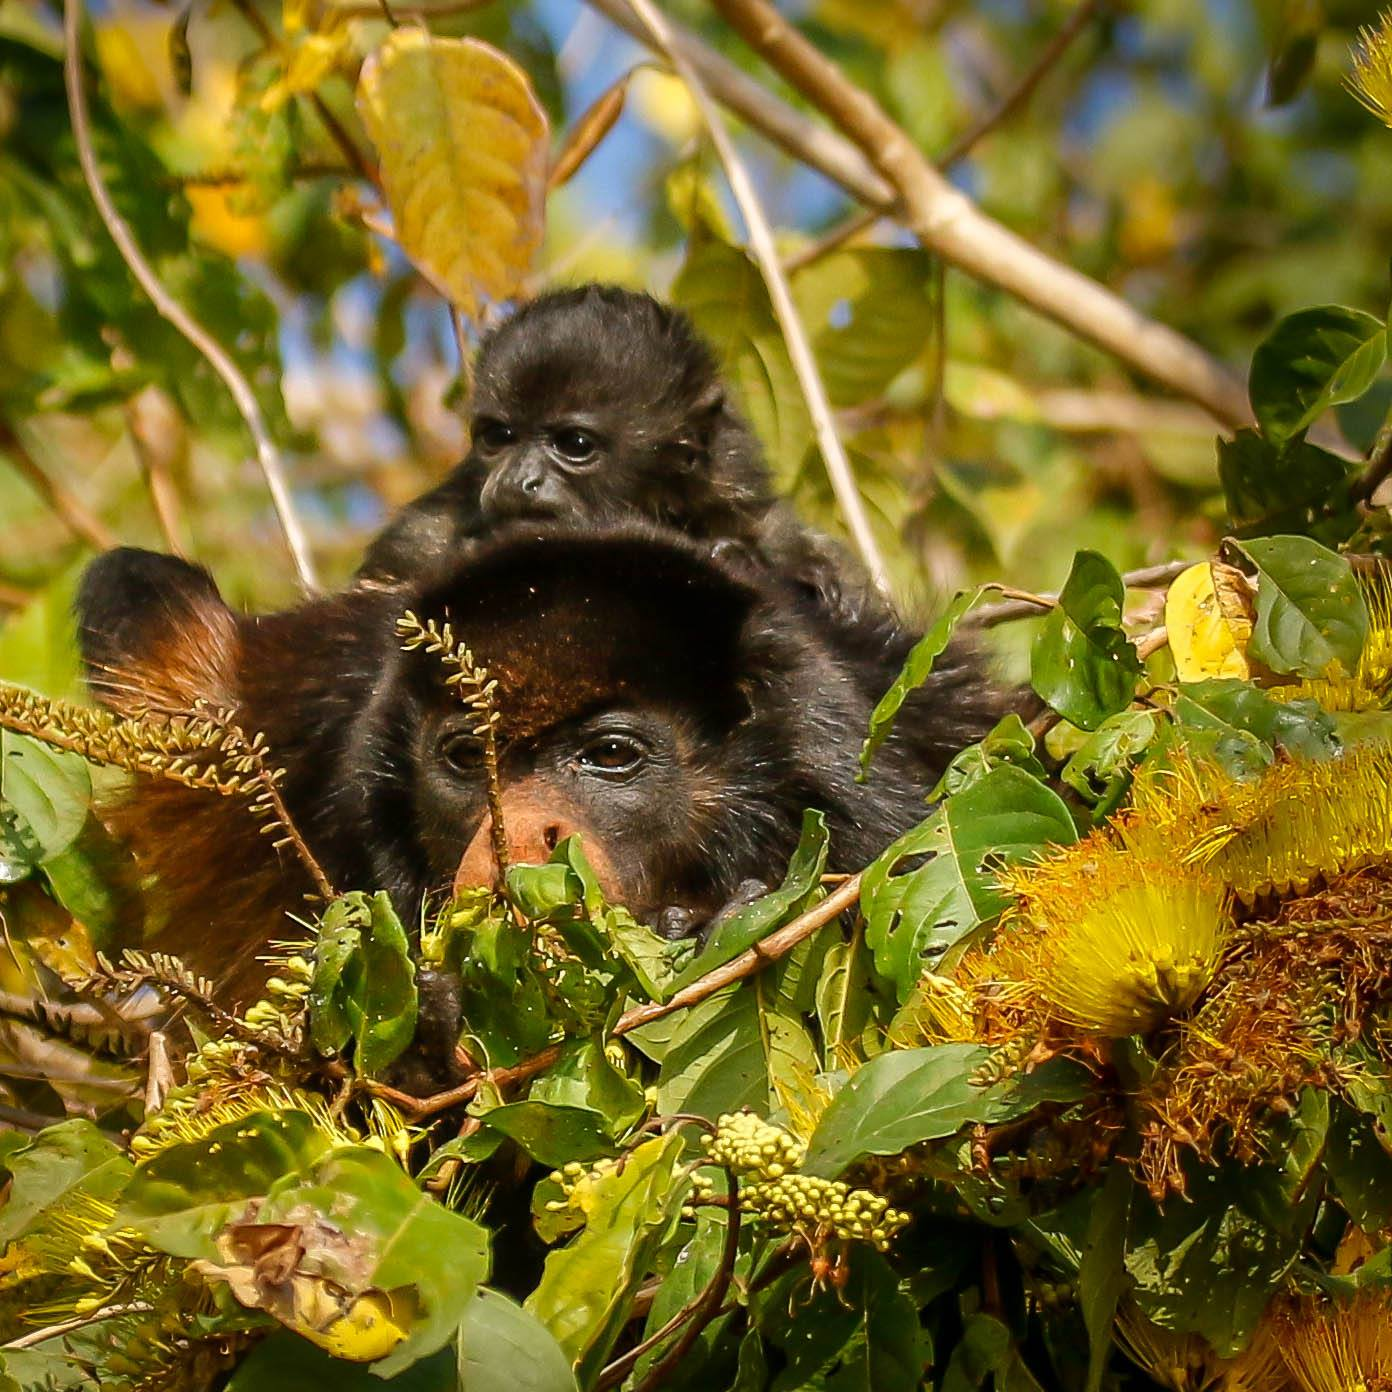 #Howler monkey and baby